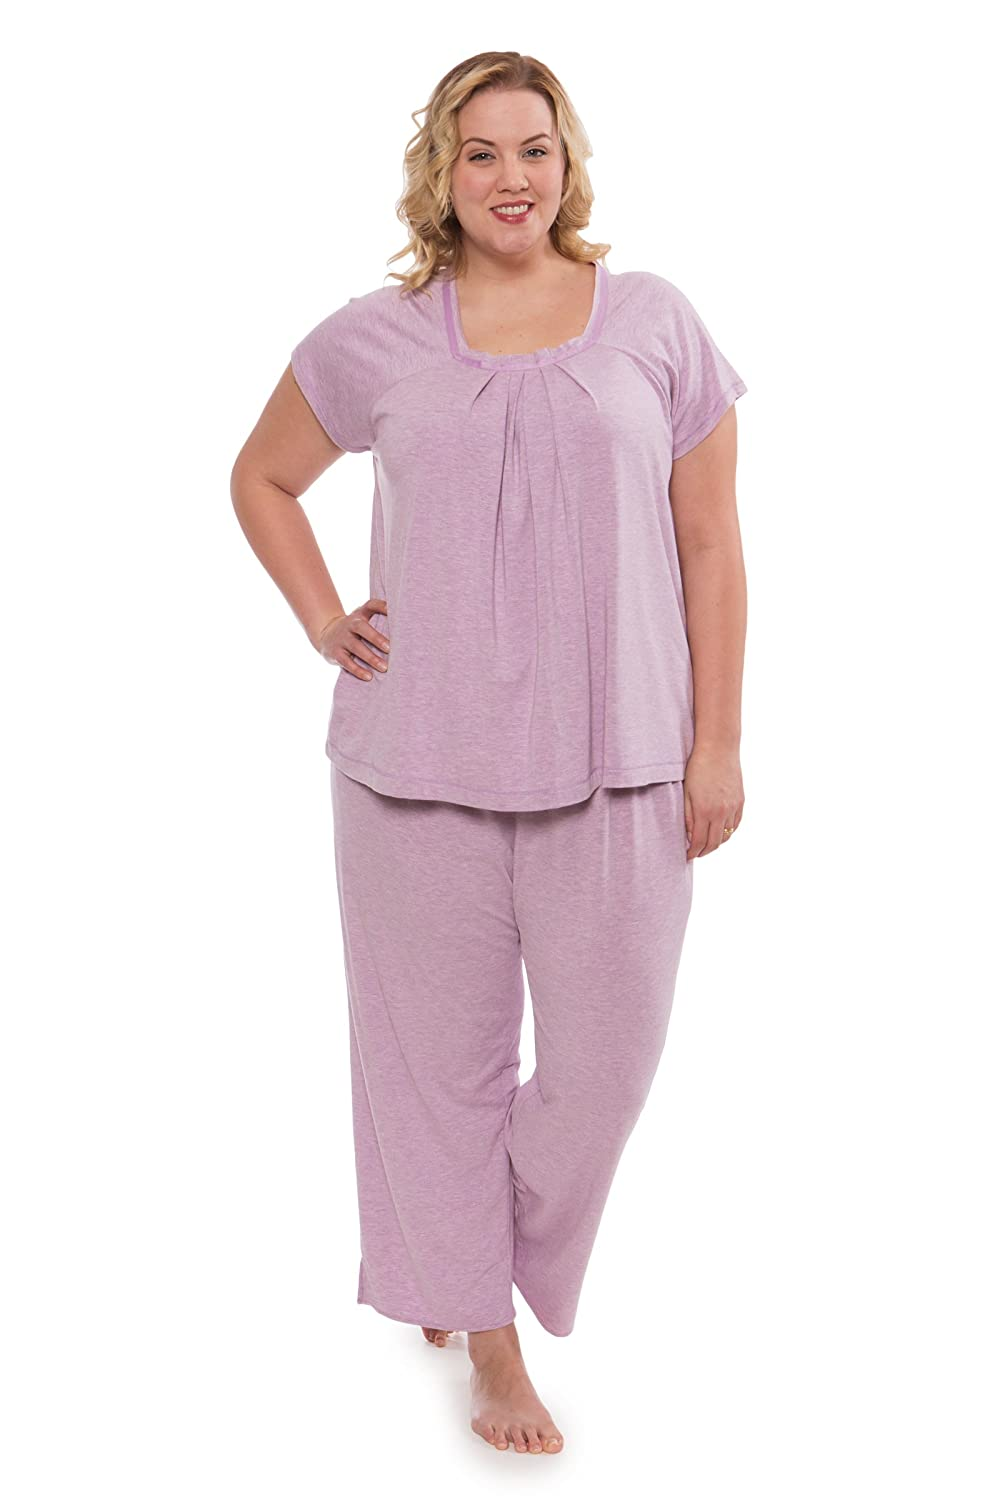 Women s Pajamas in Bamboo Viscose (Bamboo Bliss) Cozy Sleepwear Set by  Texere 40a6f1dbb